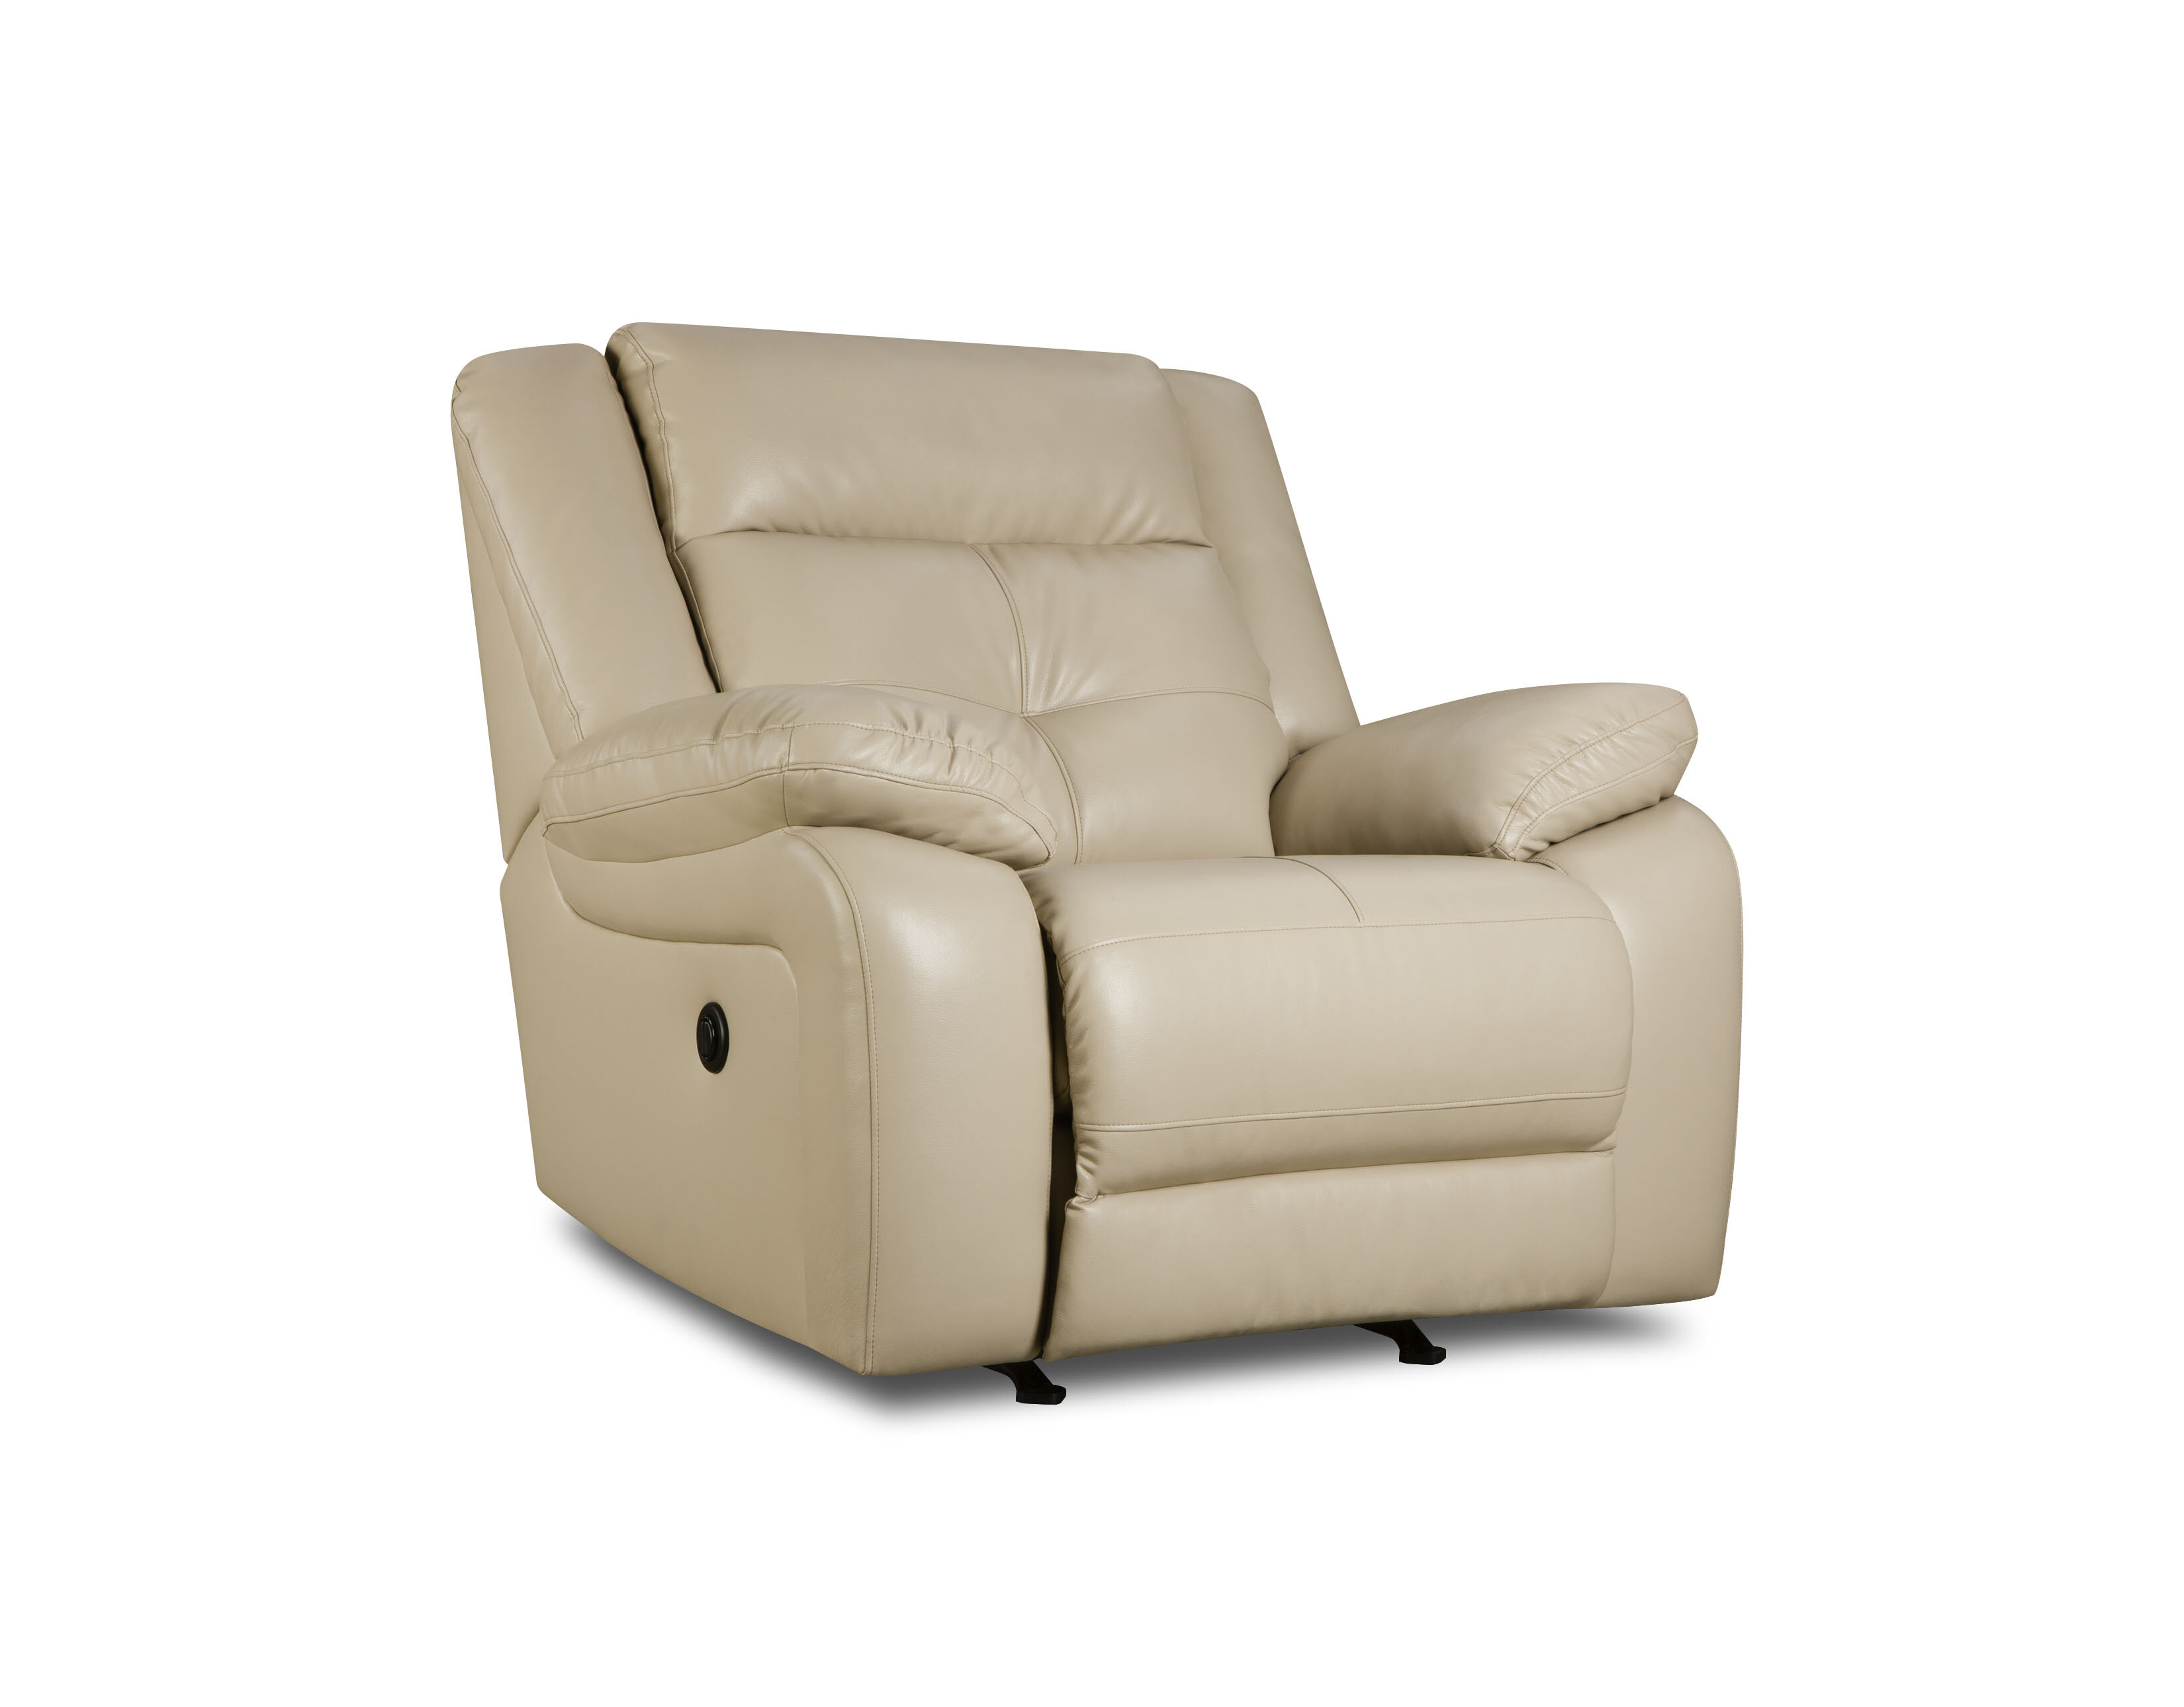 Darby Home Co Obryan Recliner by Simmons Upholstery & Reviews | Wayfair